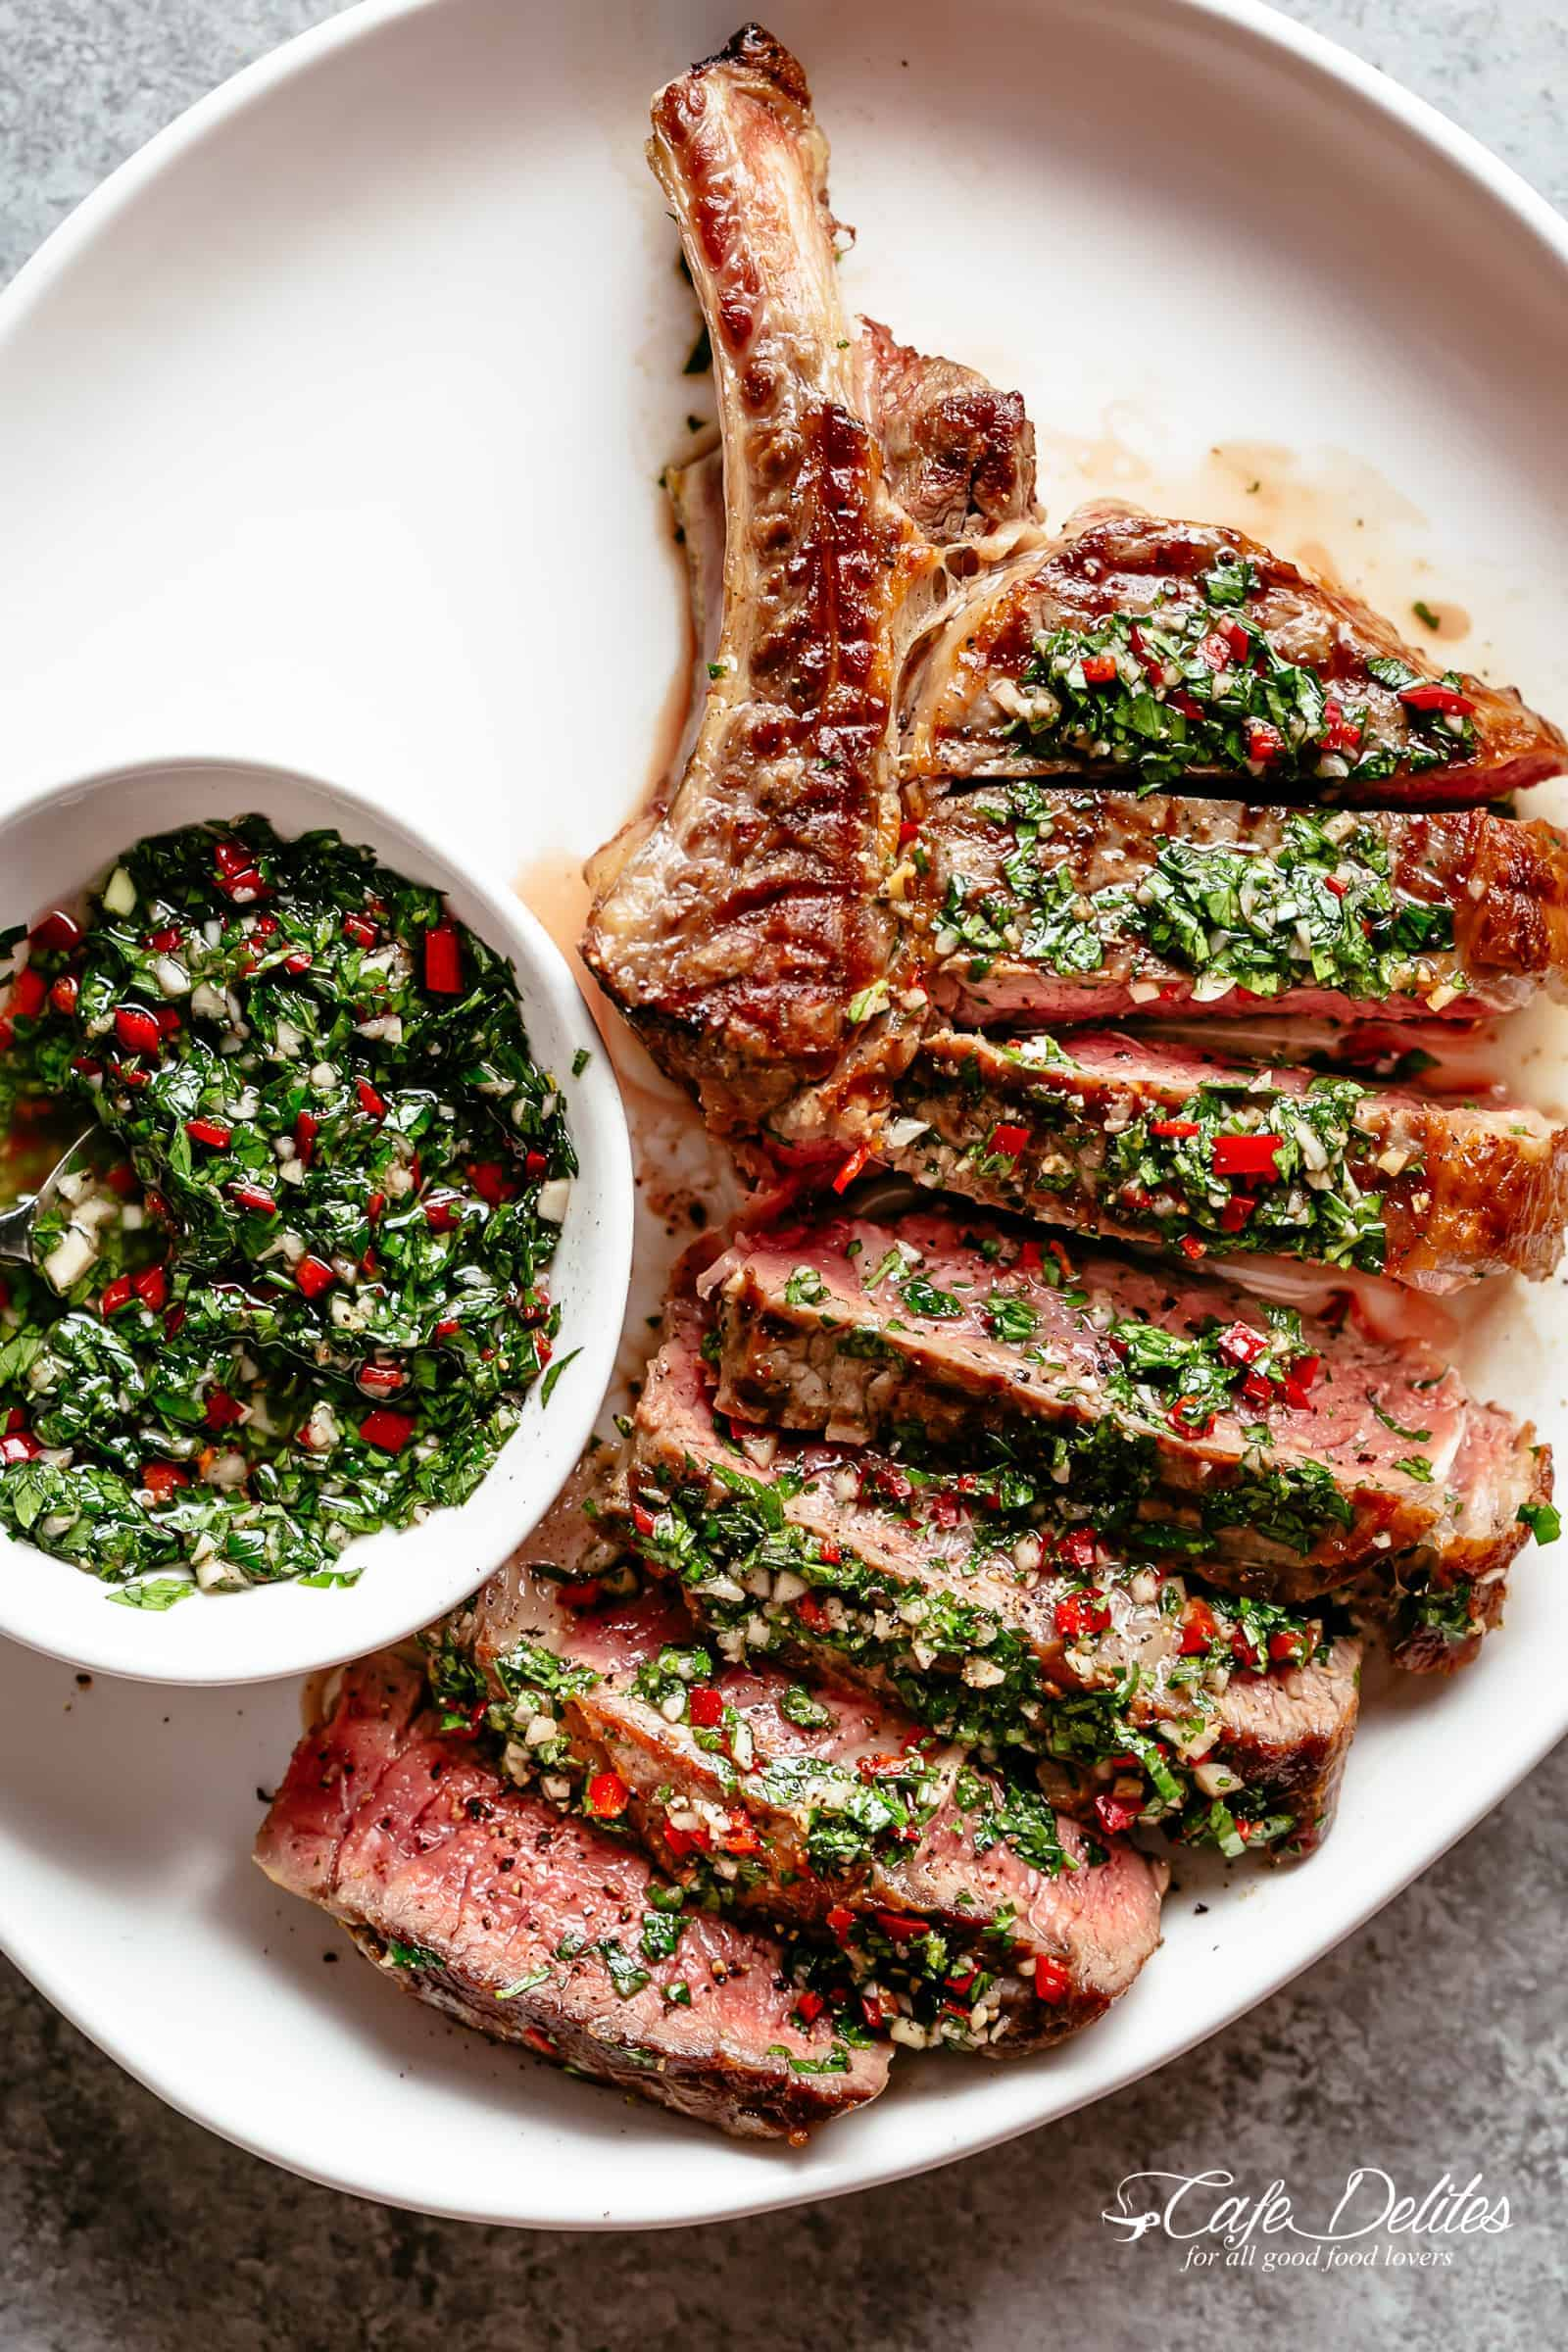 Steaks with Chimichurri! The most delicious silky condiment that drips over your steak | cafedelites.com